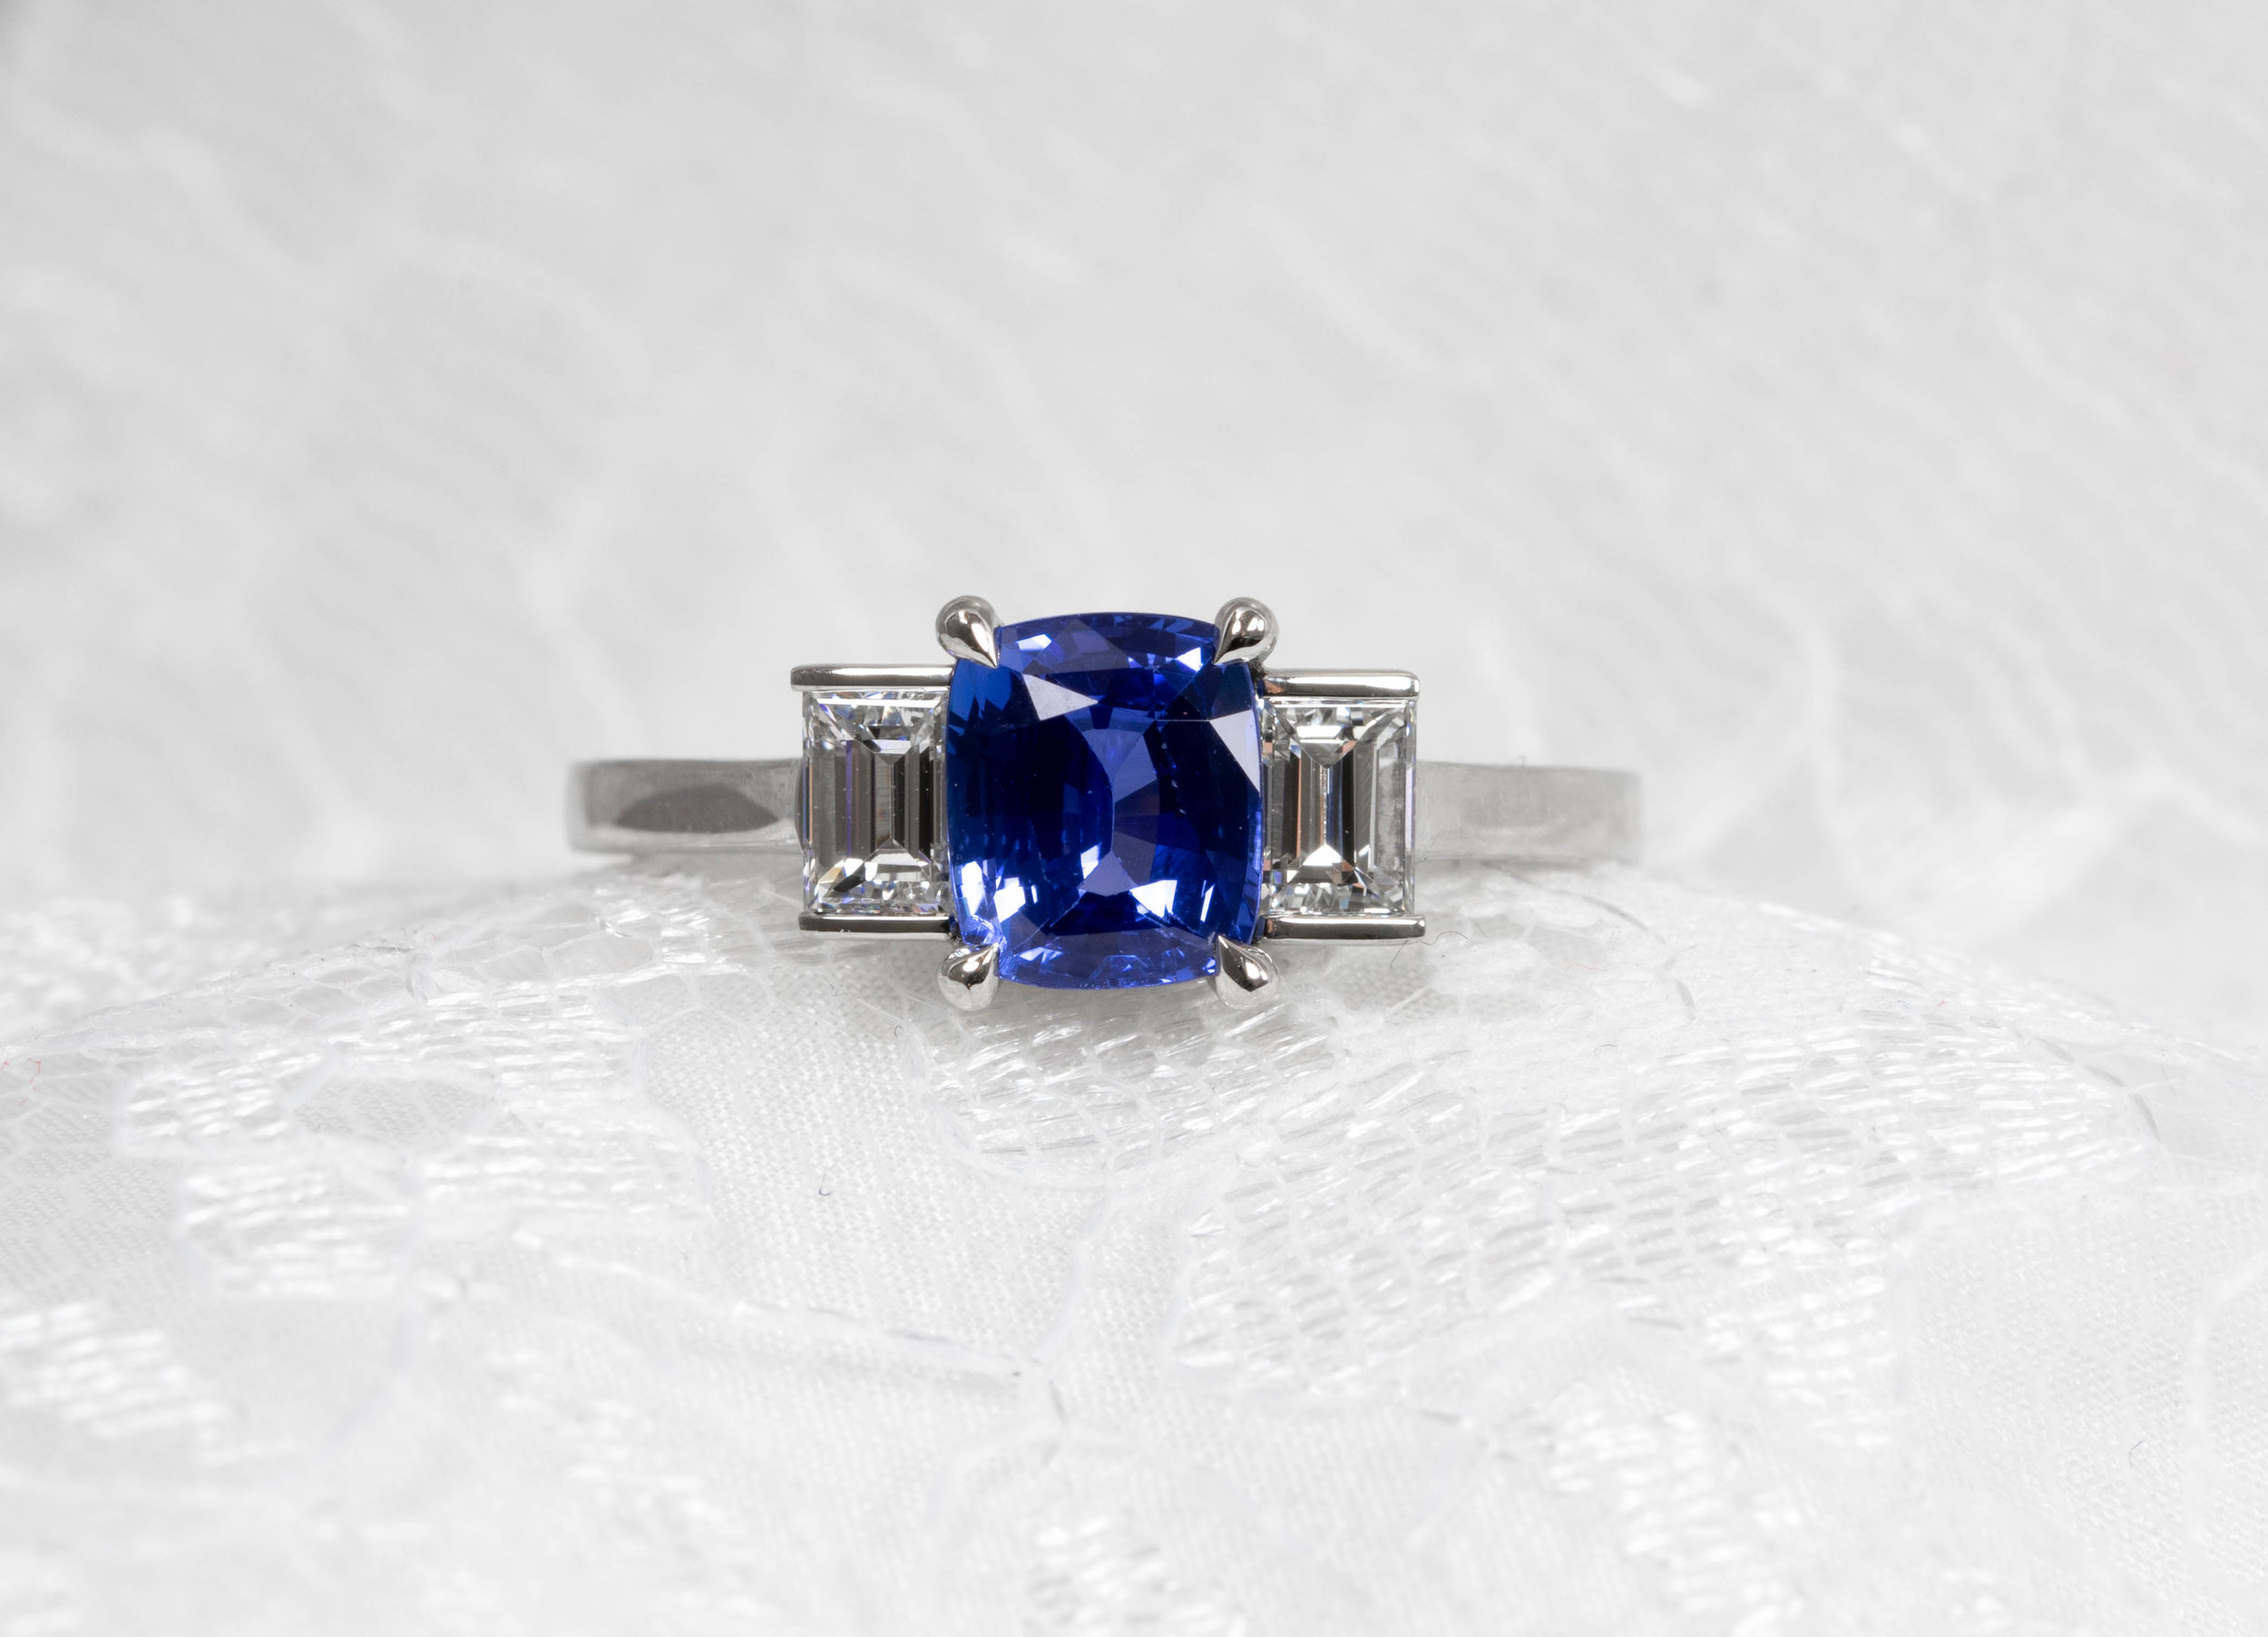 Platinum mounted cushion cut sapphire and wide baguette diamonds. Made in Chichester, England.